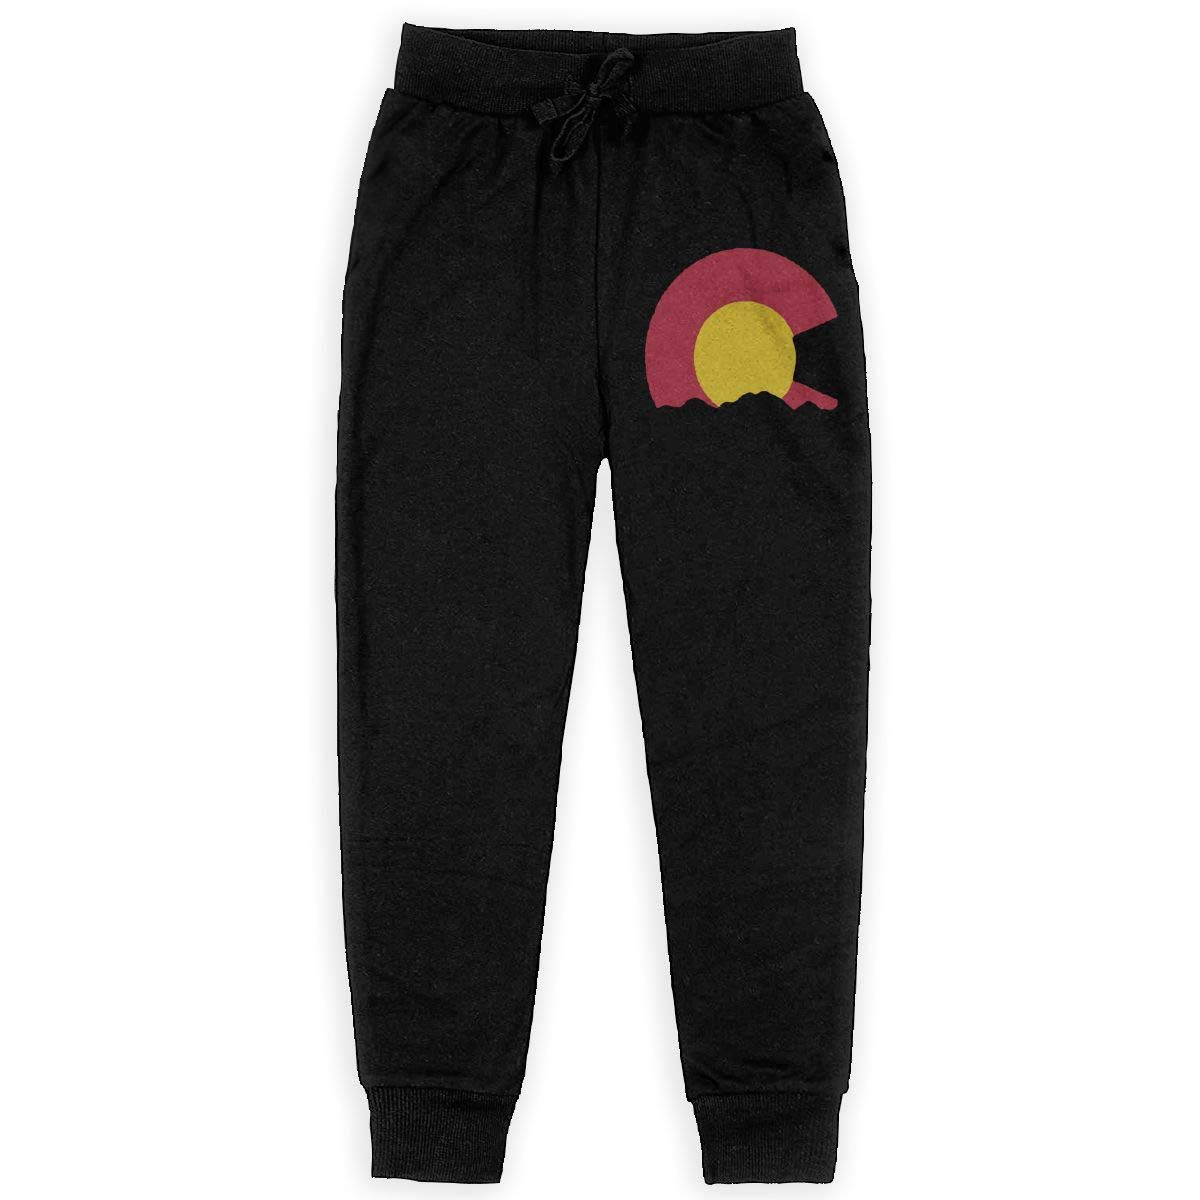 Qinf Boys Sweatpants Colorado Joggers Sport Training Pants Trousers Cotton Sweatpants for Youth